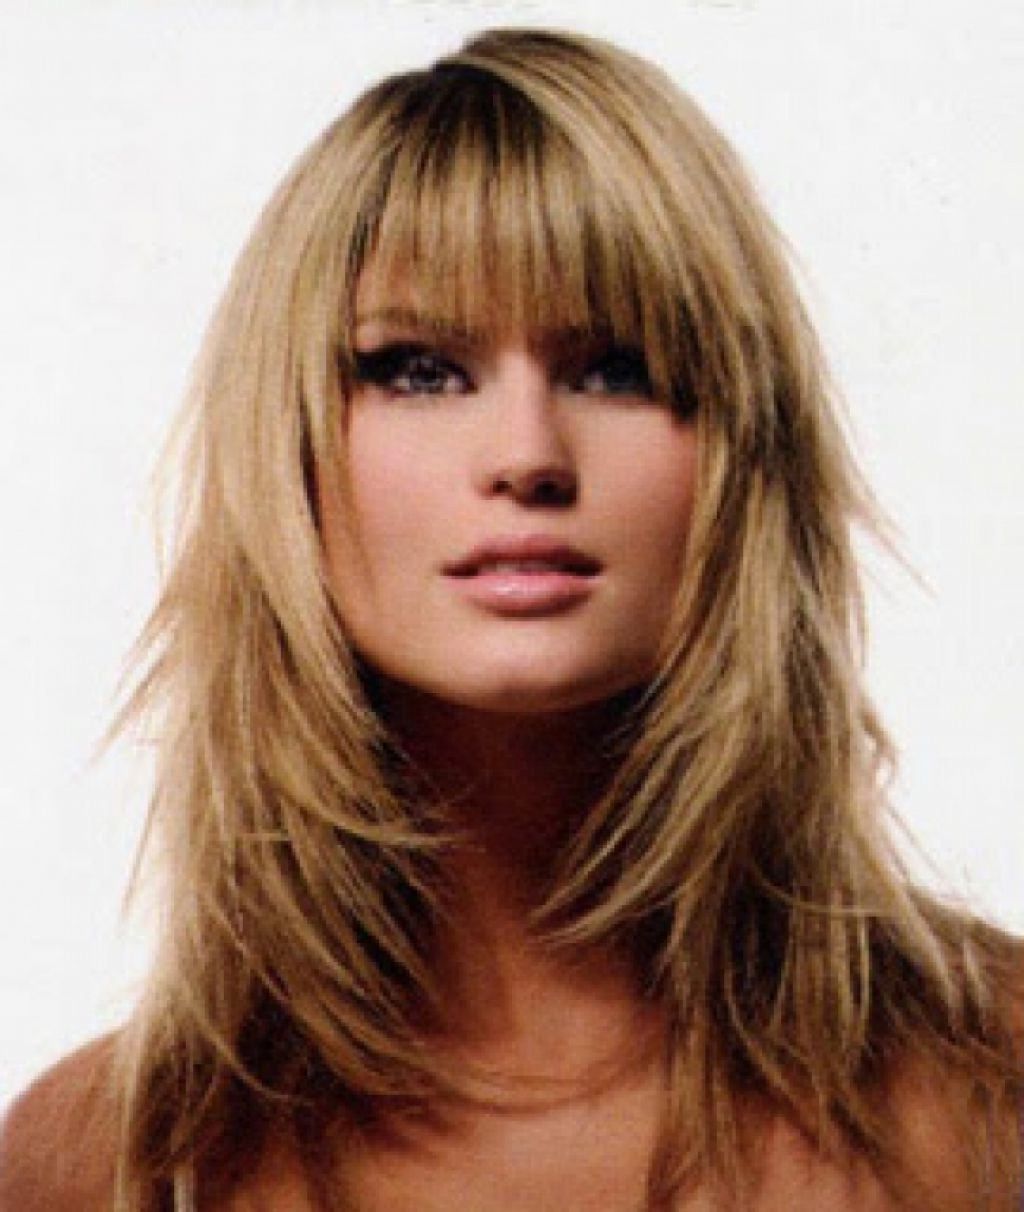 Best Long Shag Haircuts Ideas With Bangs For Straight Hair Modern For Most Up To Date Long Shaggy Hairstyles With Bangs (View 2 of 15)